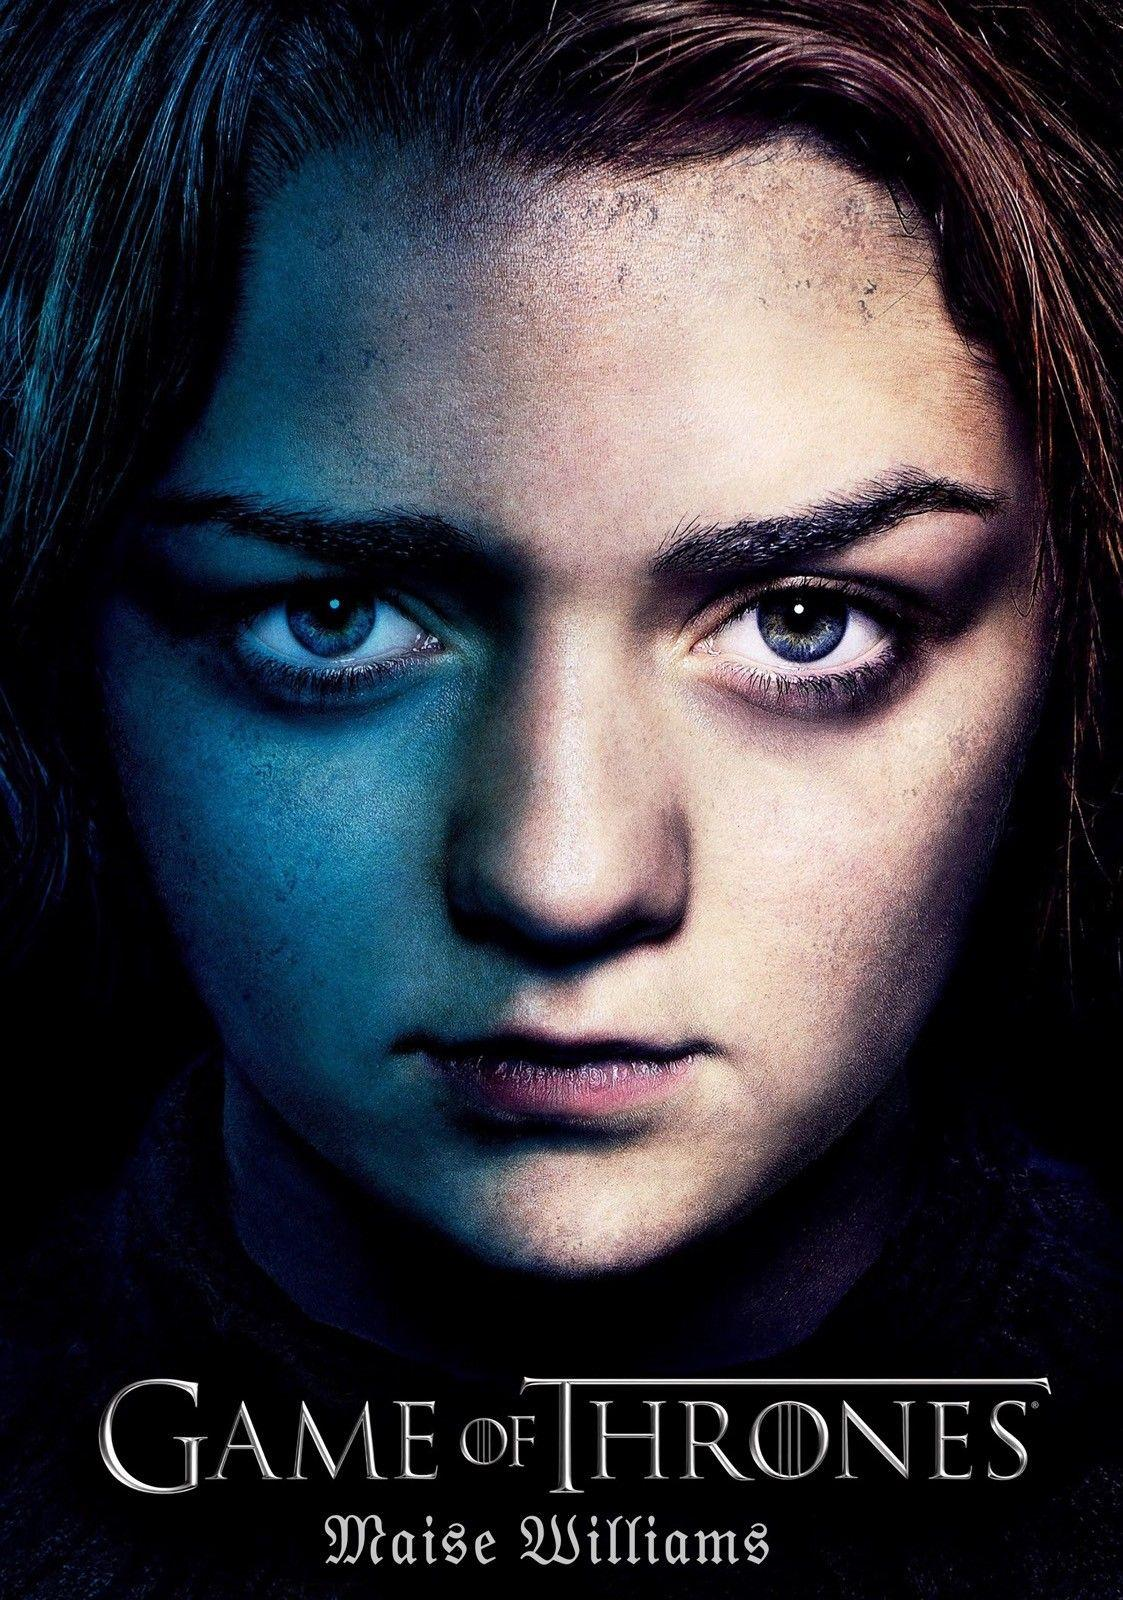 MAISIE WILLIAMS Série Actress Art Game Of Thrones Arte De Queda De Seda Cartaz Impressão 24x36 polegada (60x90 cm) 04